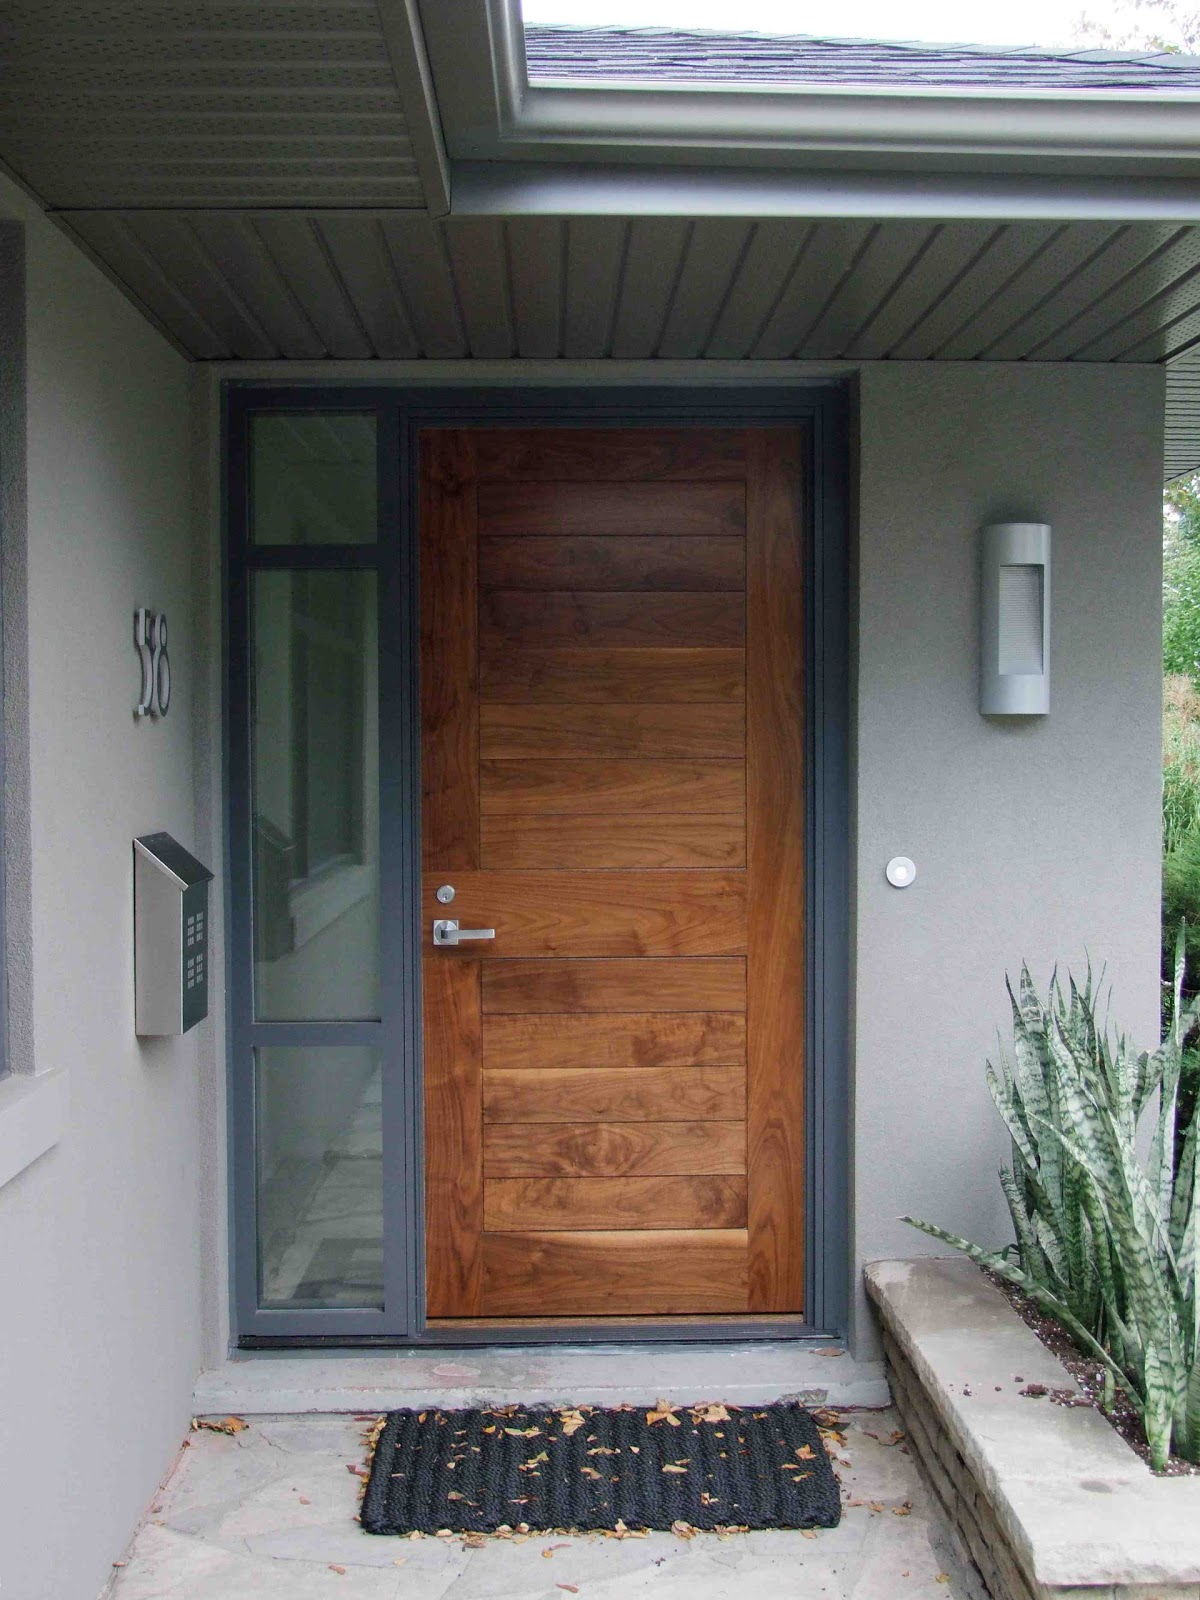 Creed 70 39 s bungalow makes a modern impression for Large front entry doors